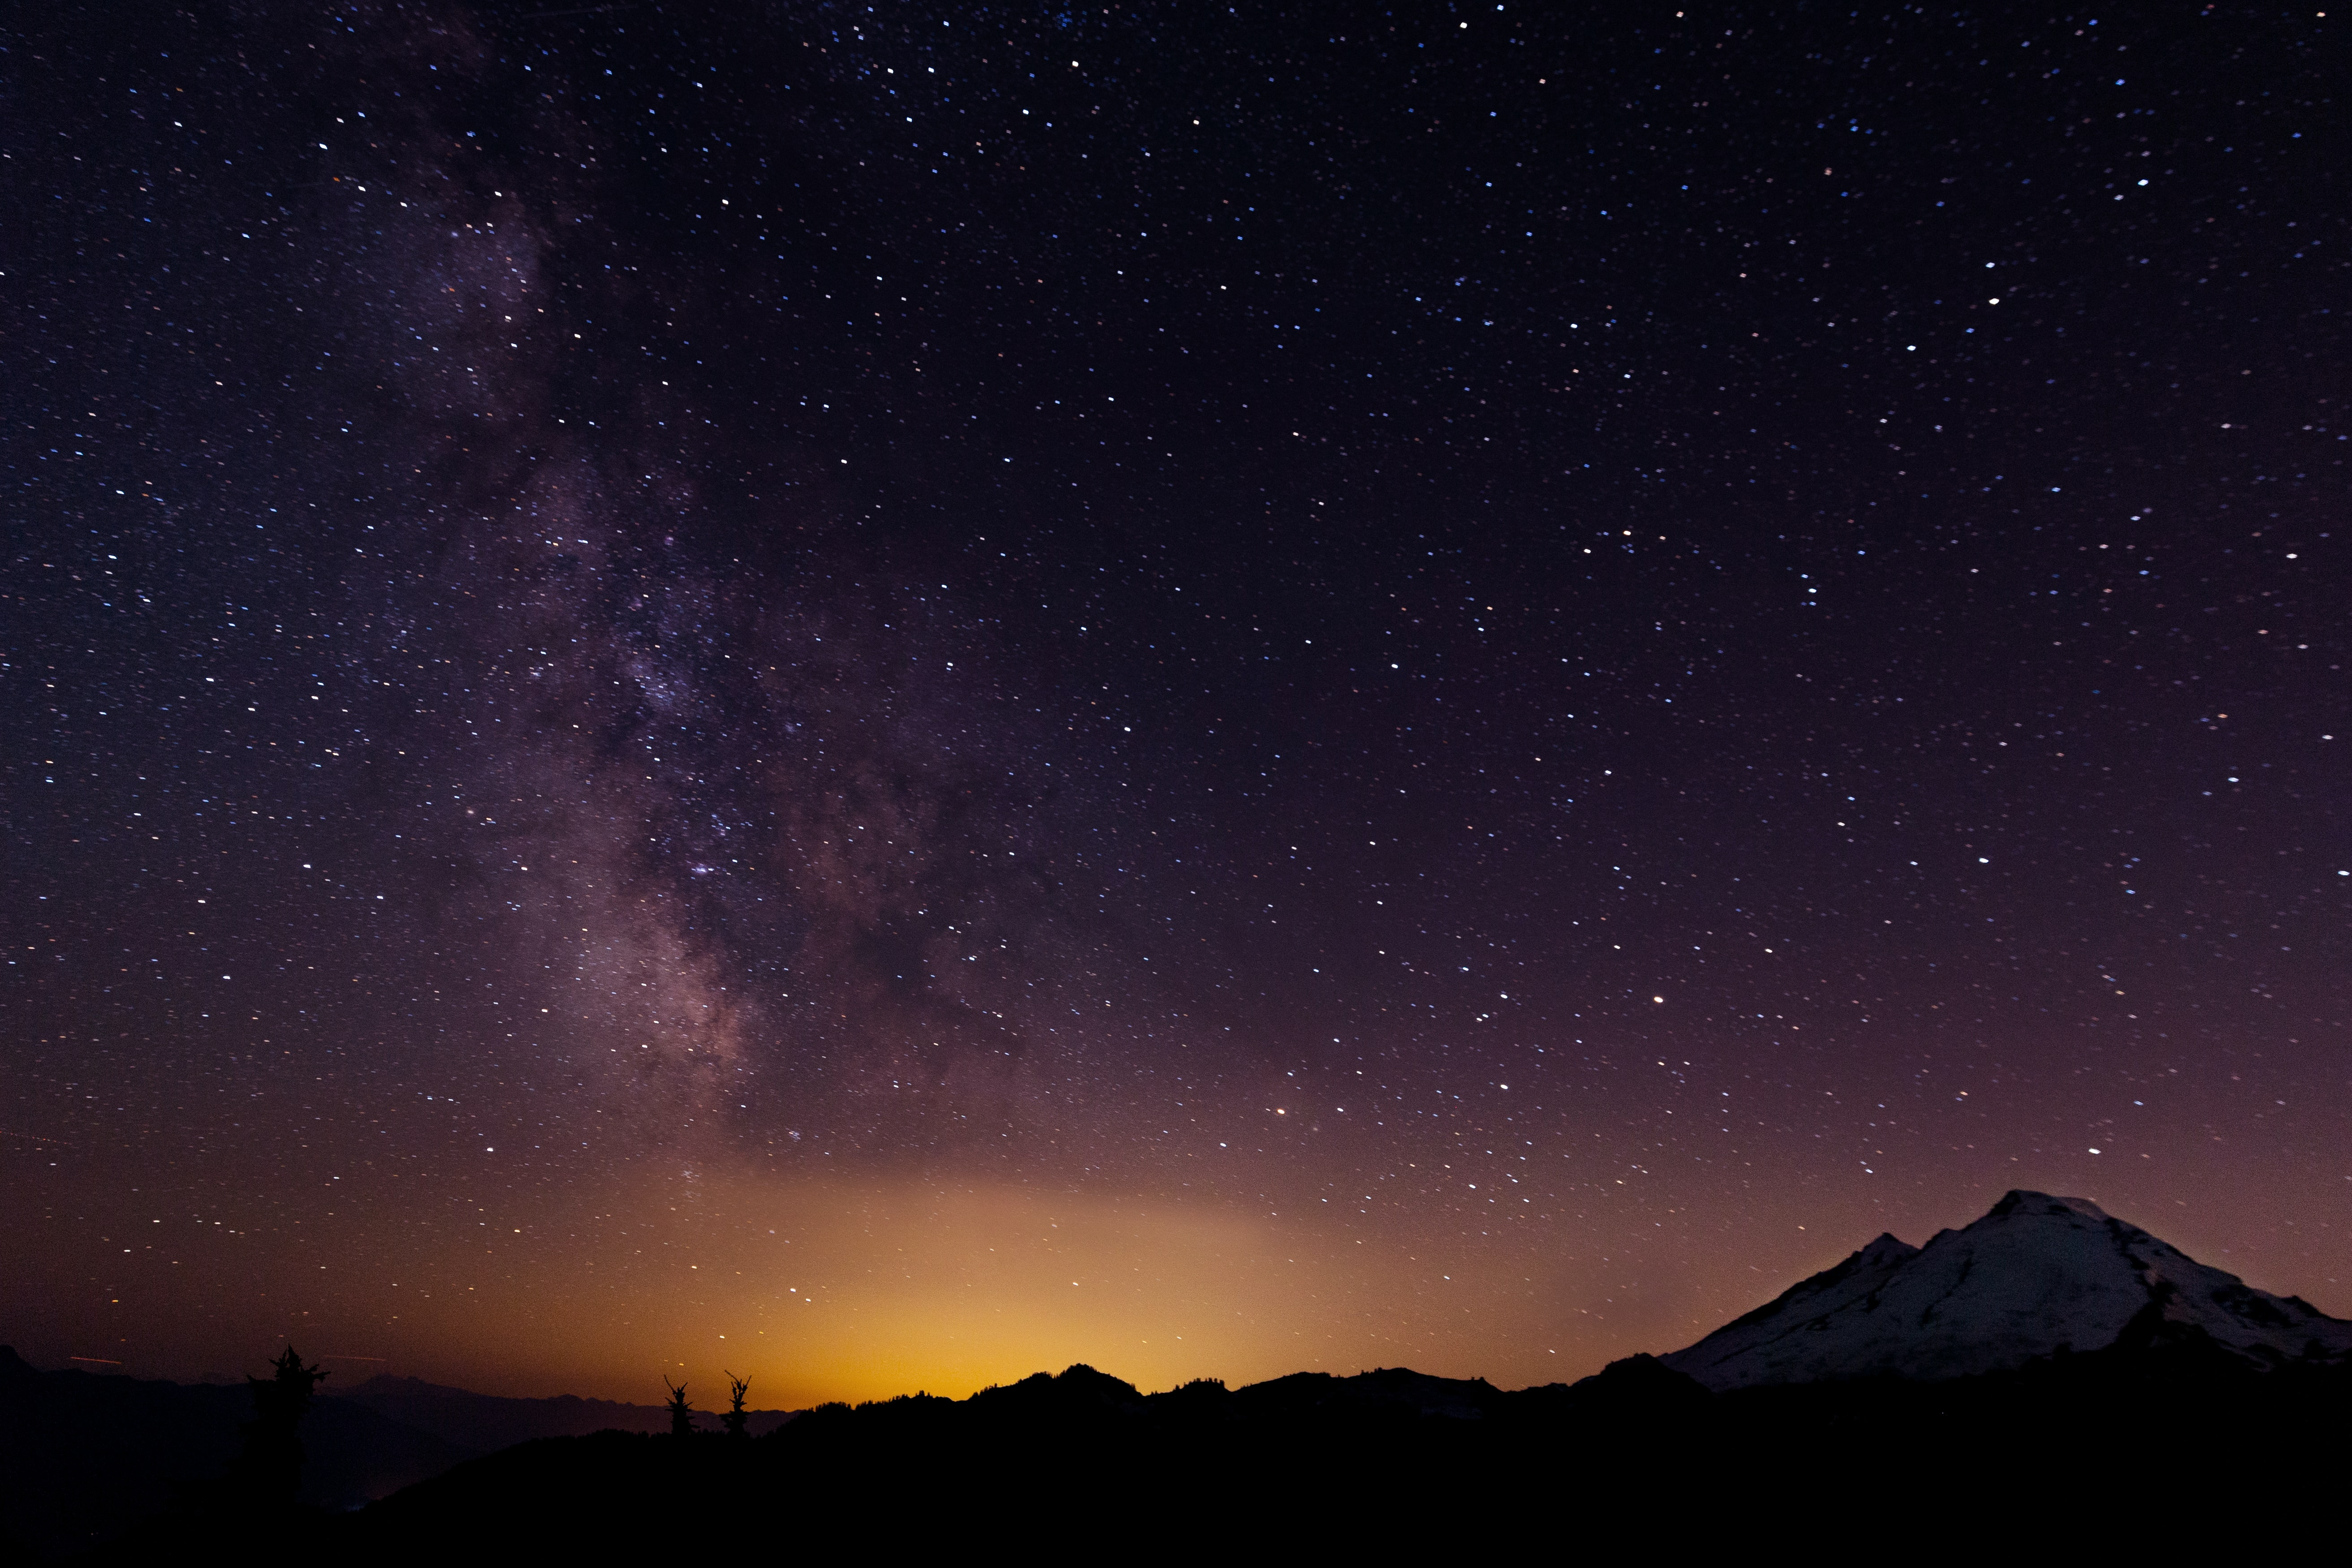 silhouette of mountains during nighttime